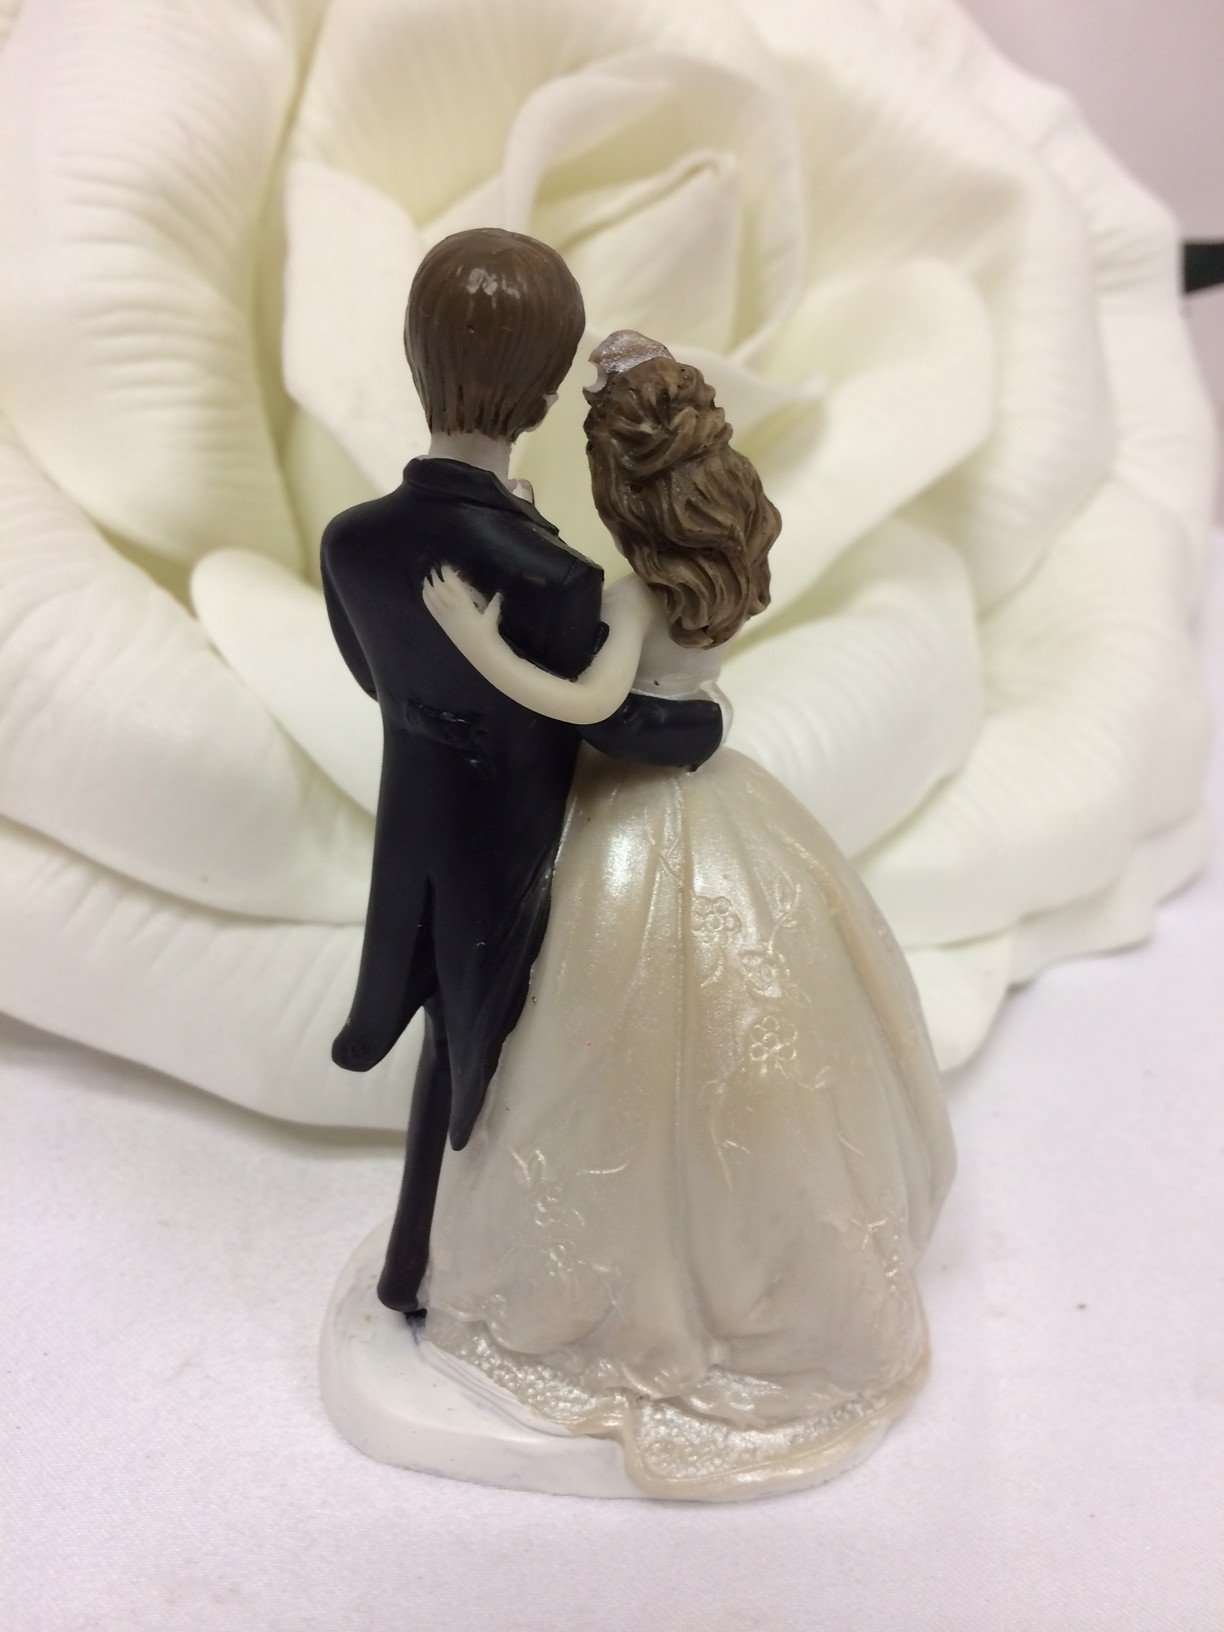 48 Wedding Bride and Groom Couple Favor Cake Topper Figurine by onlinepartycenter (Image #2)